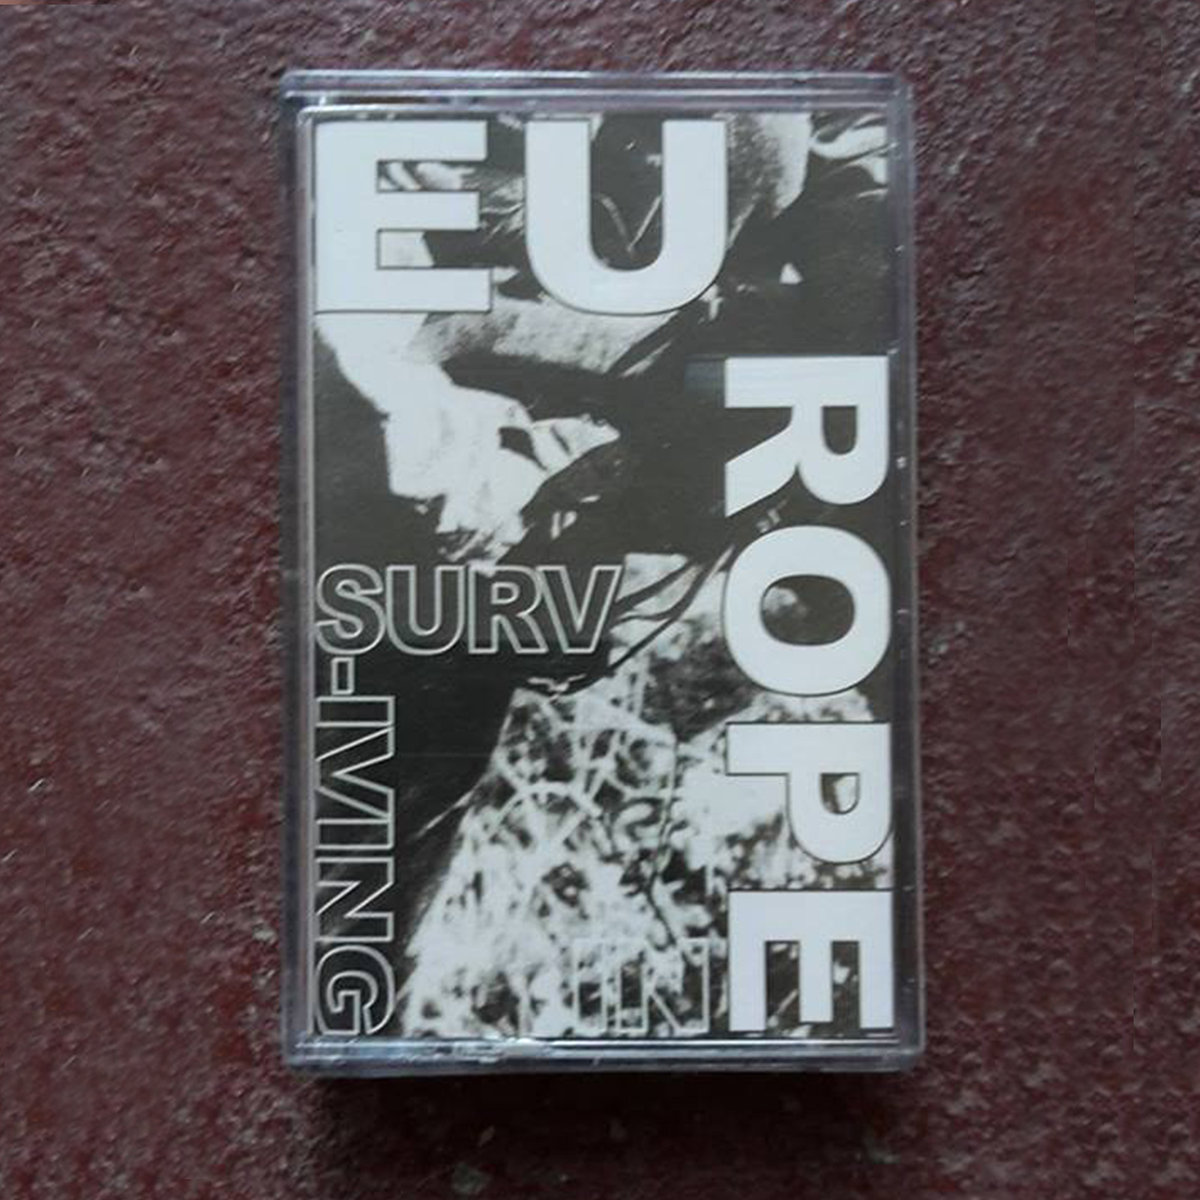 Huren, Unhuman, Matter, Celldod, Scarpa and more...SURVIVING IN EU-ROPE-Celldod-Huren-Matter-Scarpa and more...-Unhuman-Art